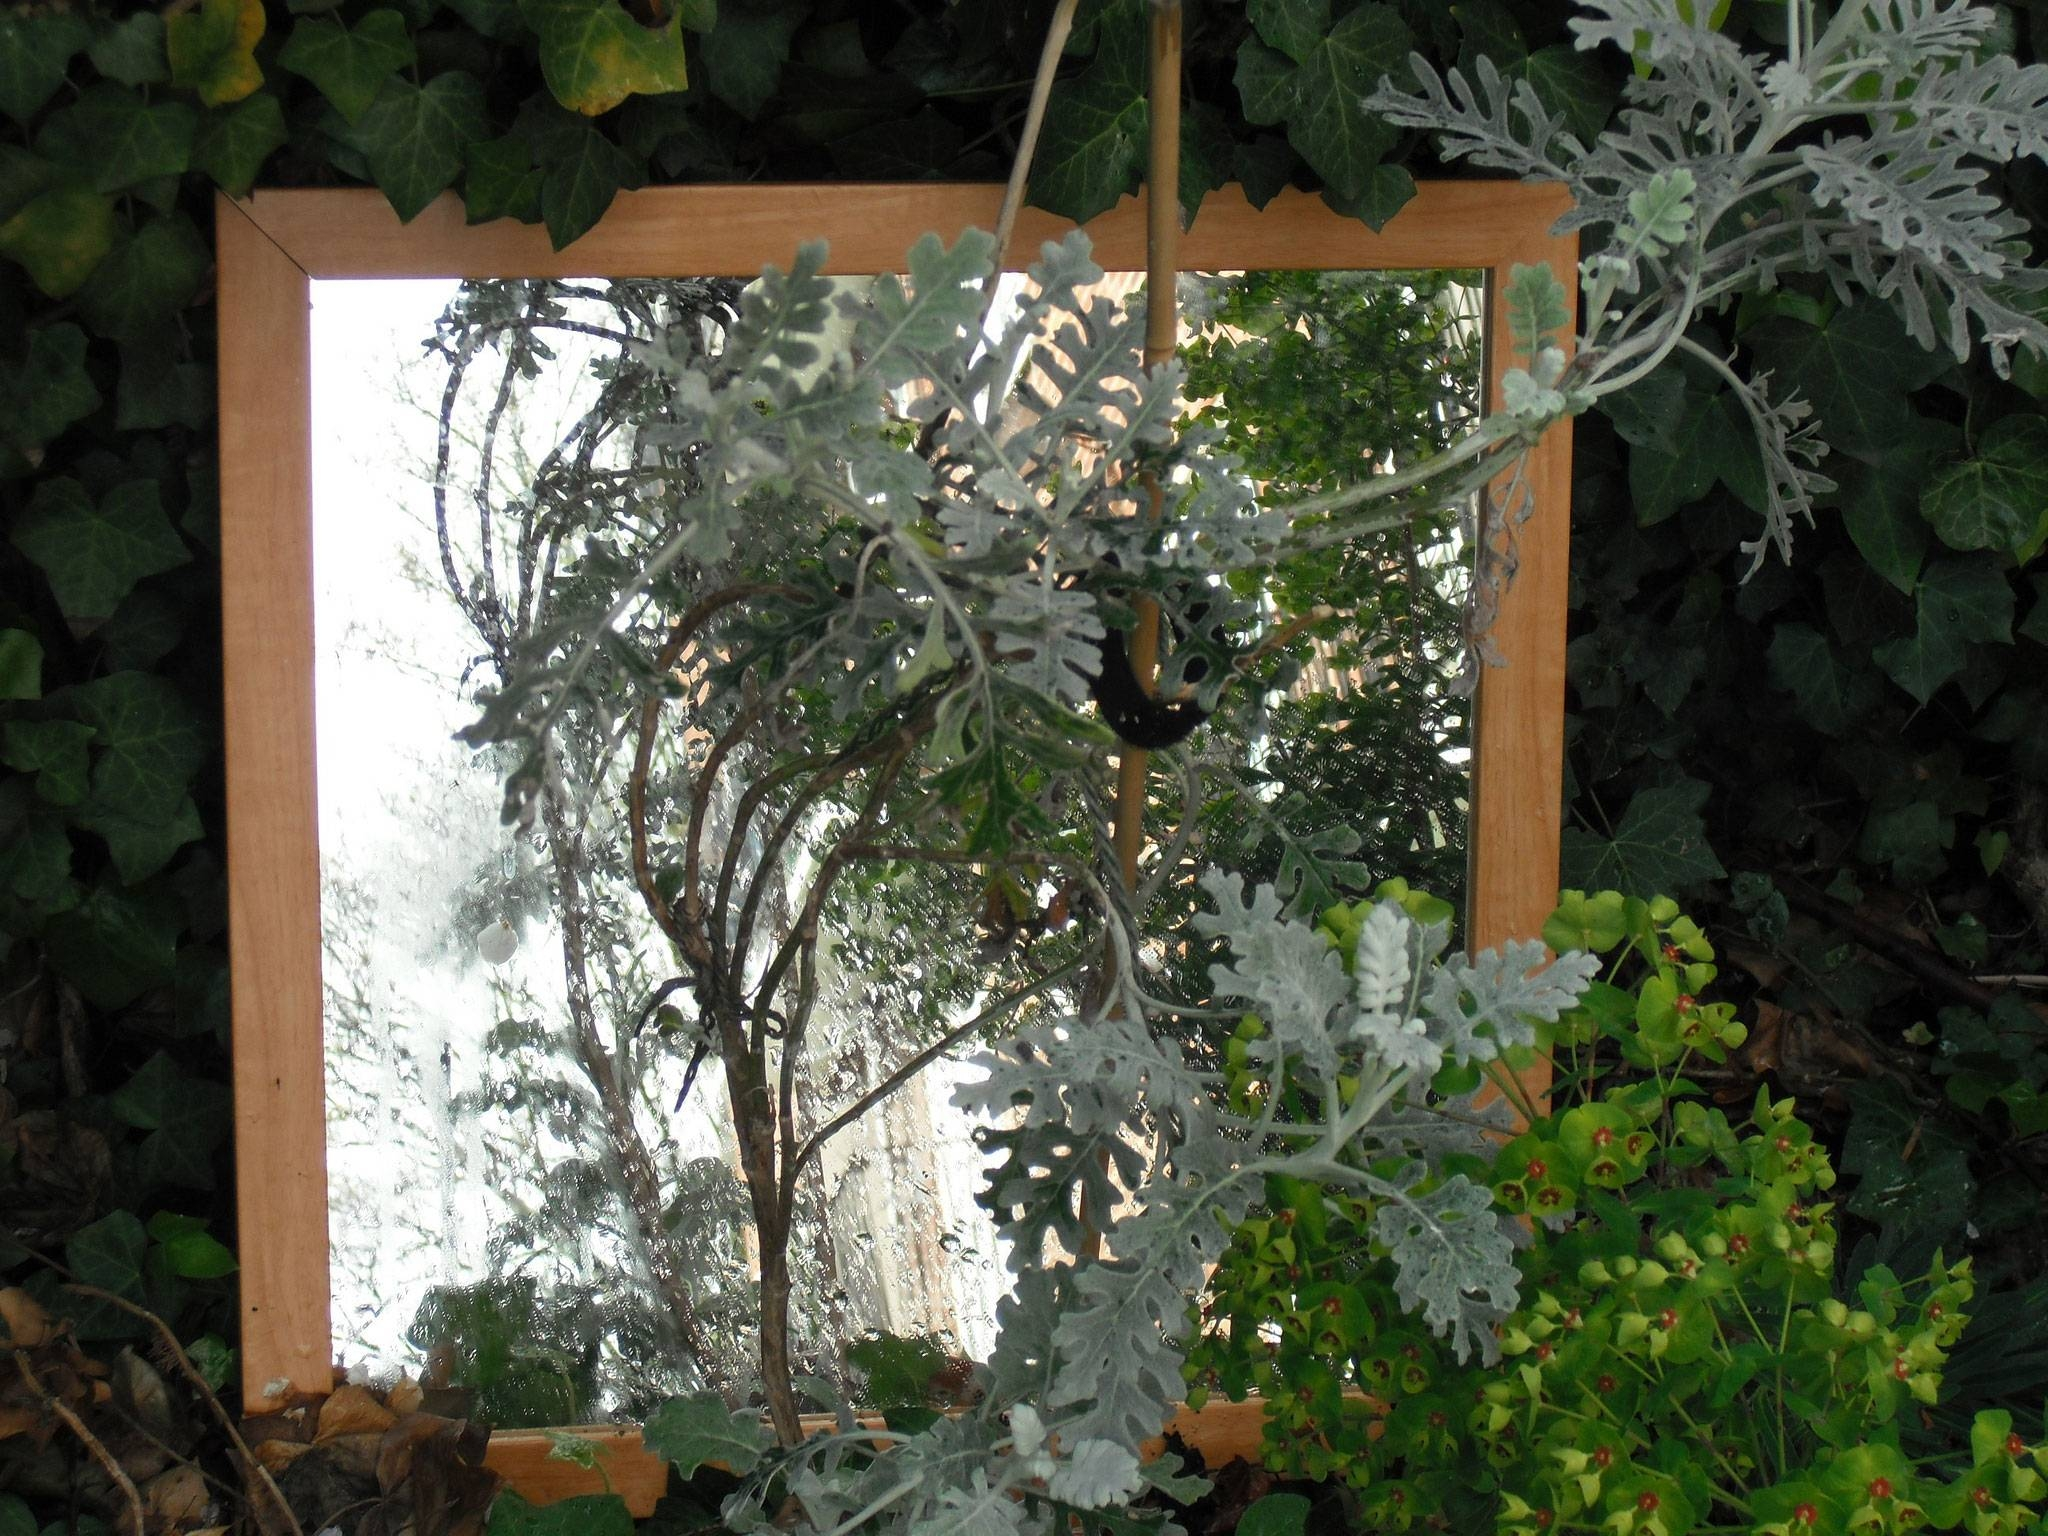 Mirrors For Garden Use – Information About Using Garden Mirrors inside Large Garden Mirrors (Image 14 of 15)